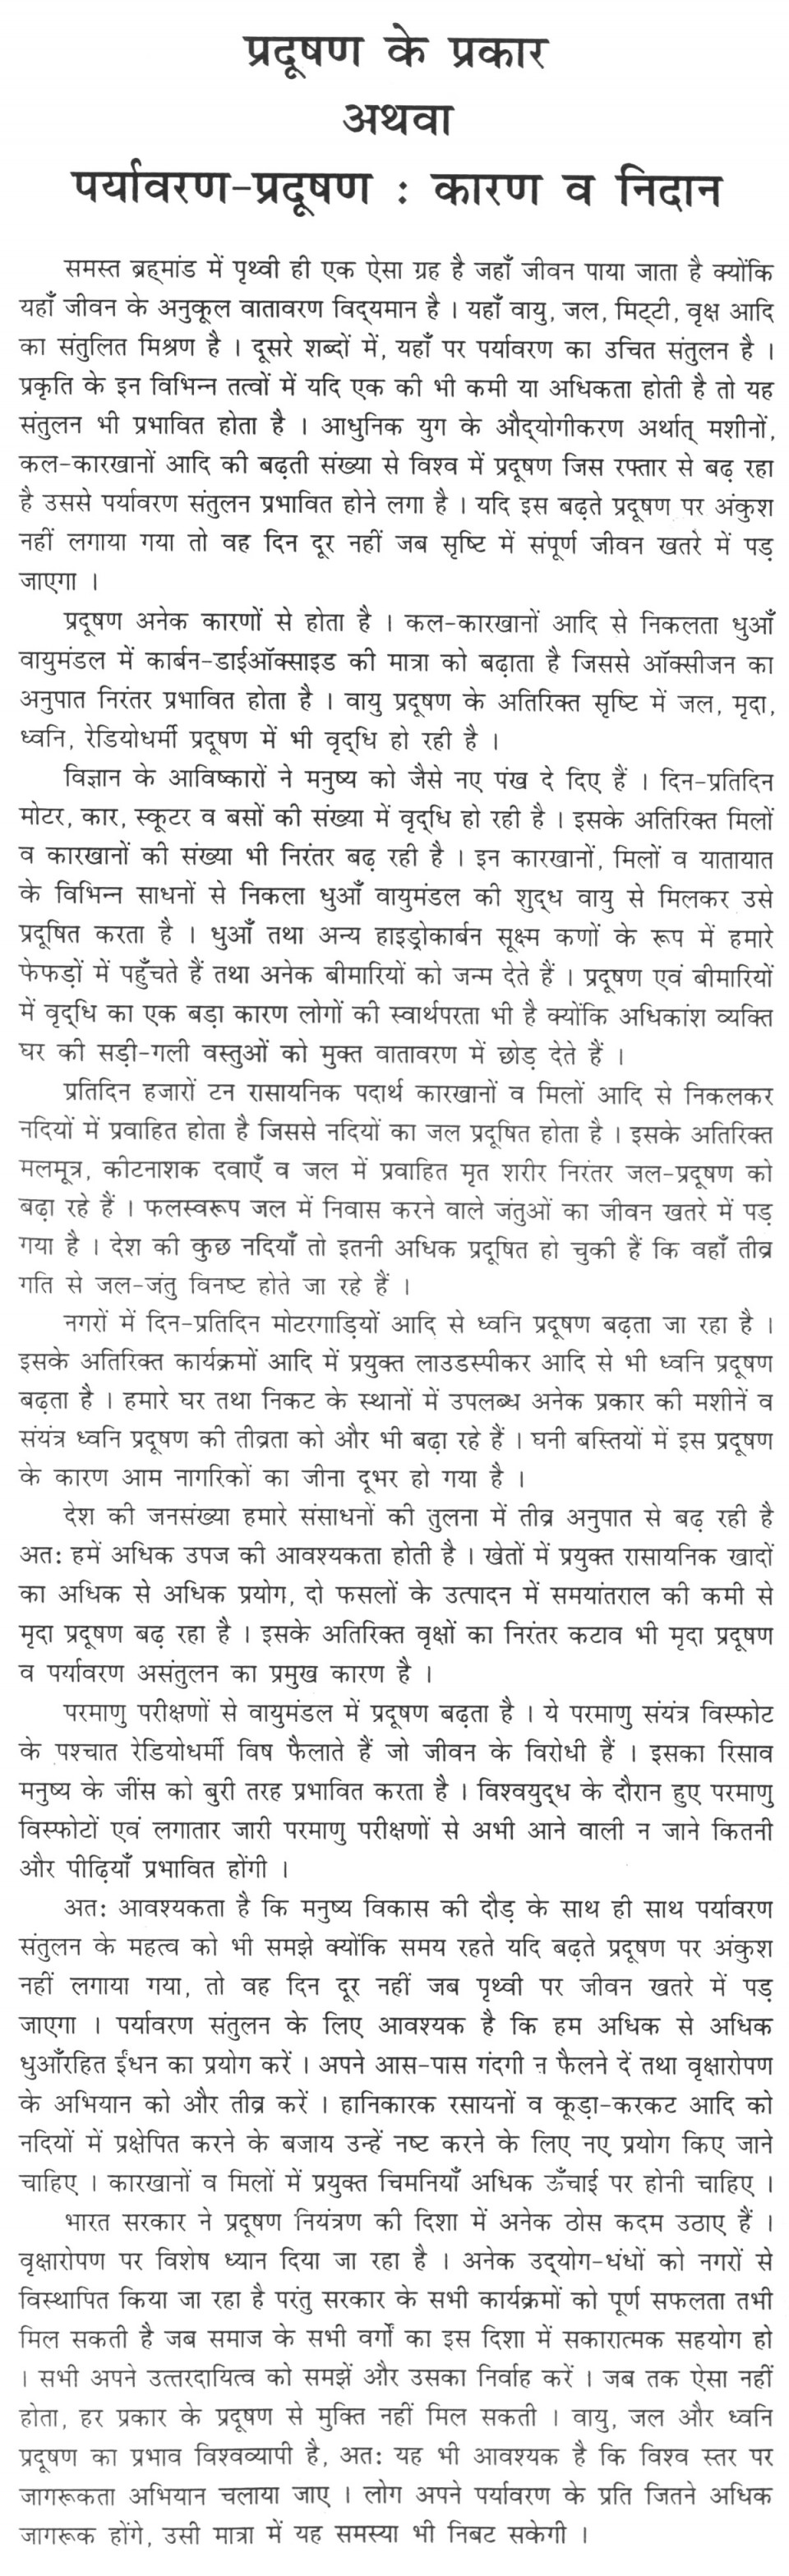 014 Good Habits Essay In Hindi Exceptional Bad Eating Habit 960